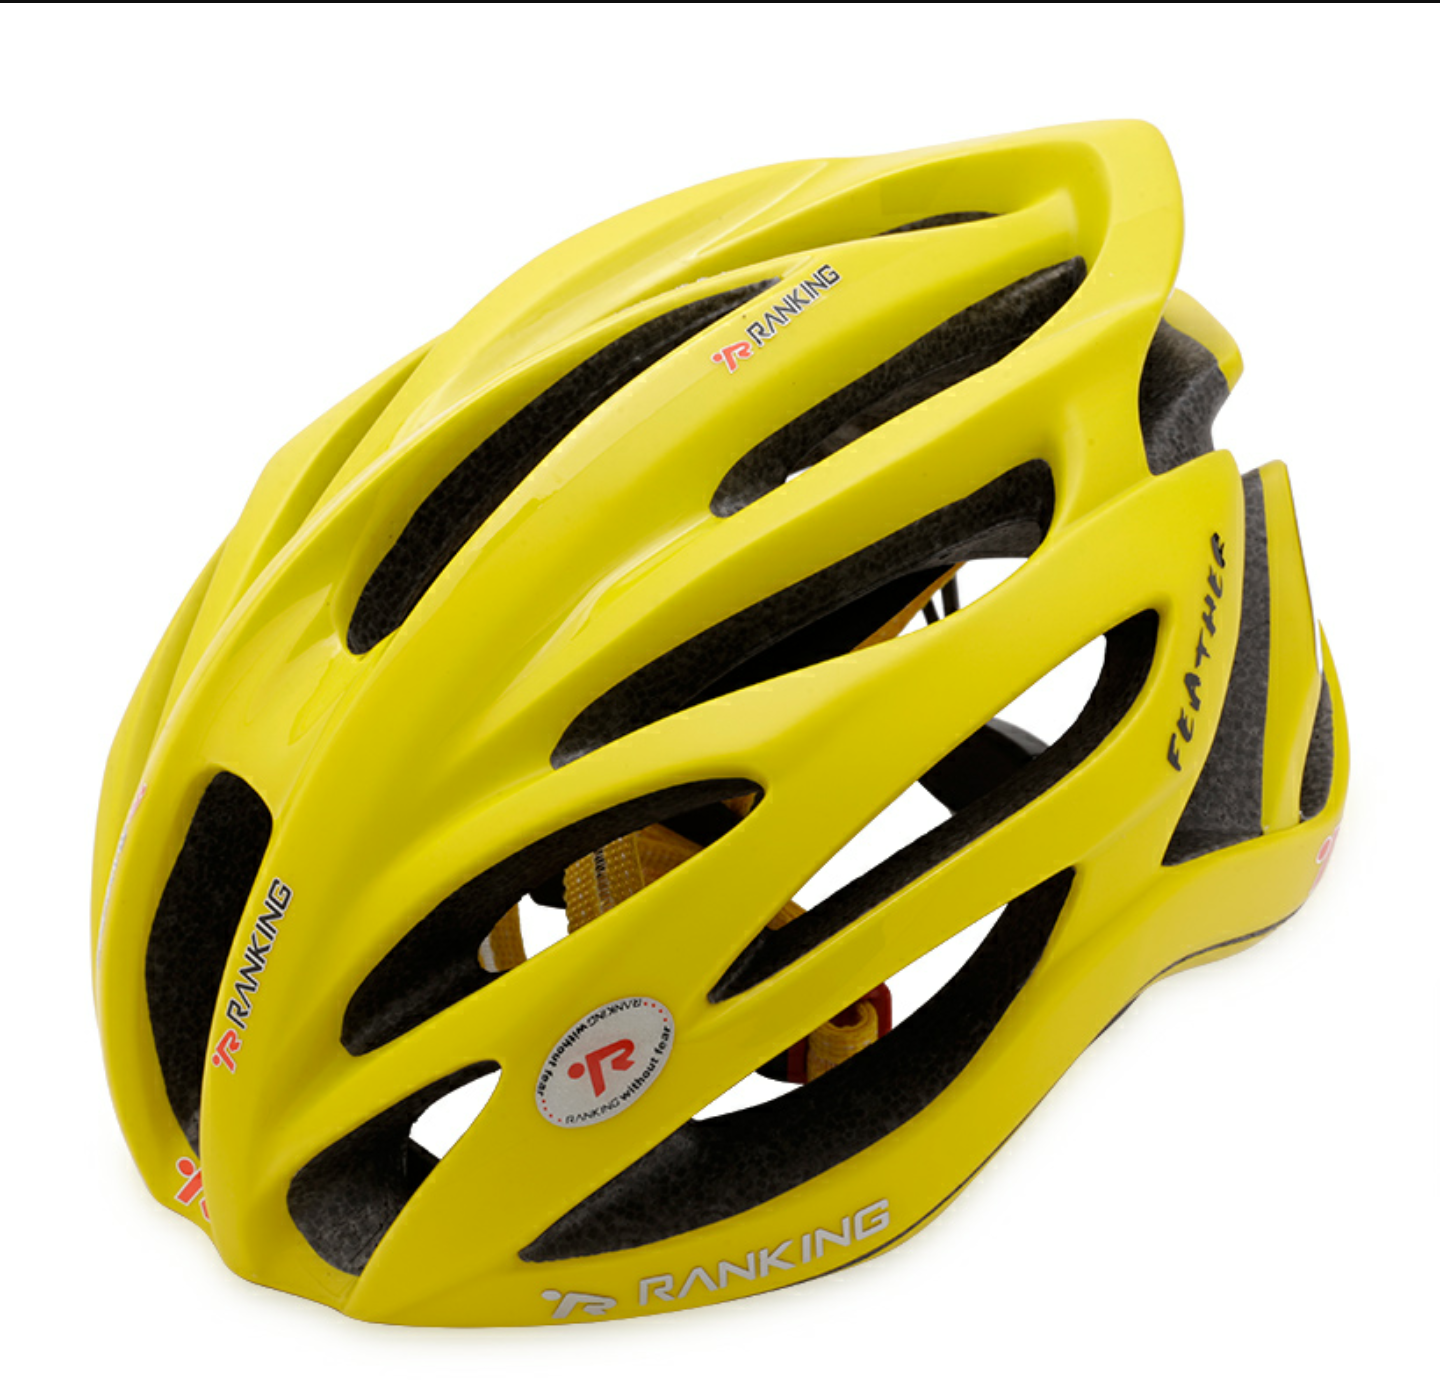 CASCO HELEMT RANKING FEATHER GIALLO LUCIDO OMAGGIO HELMET COVER